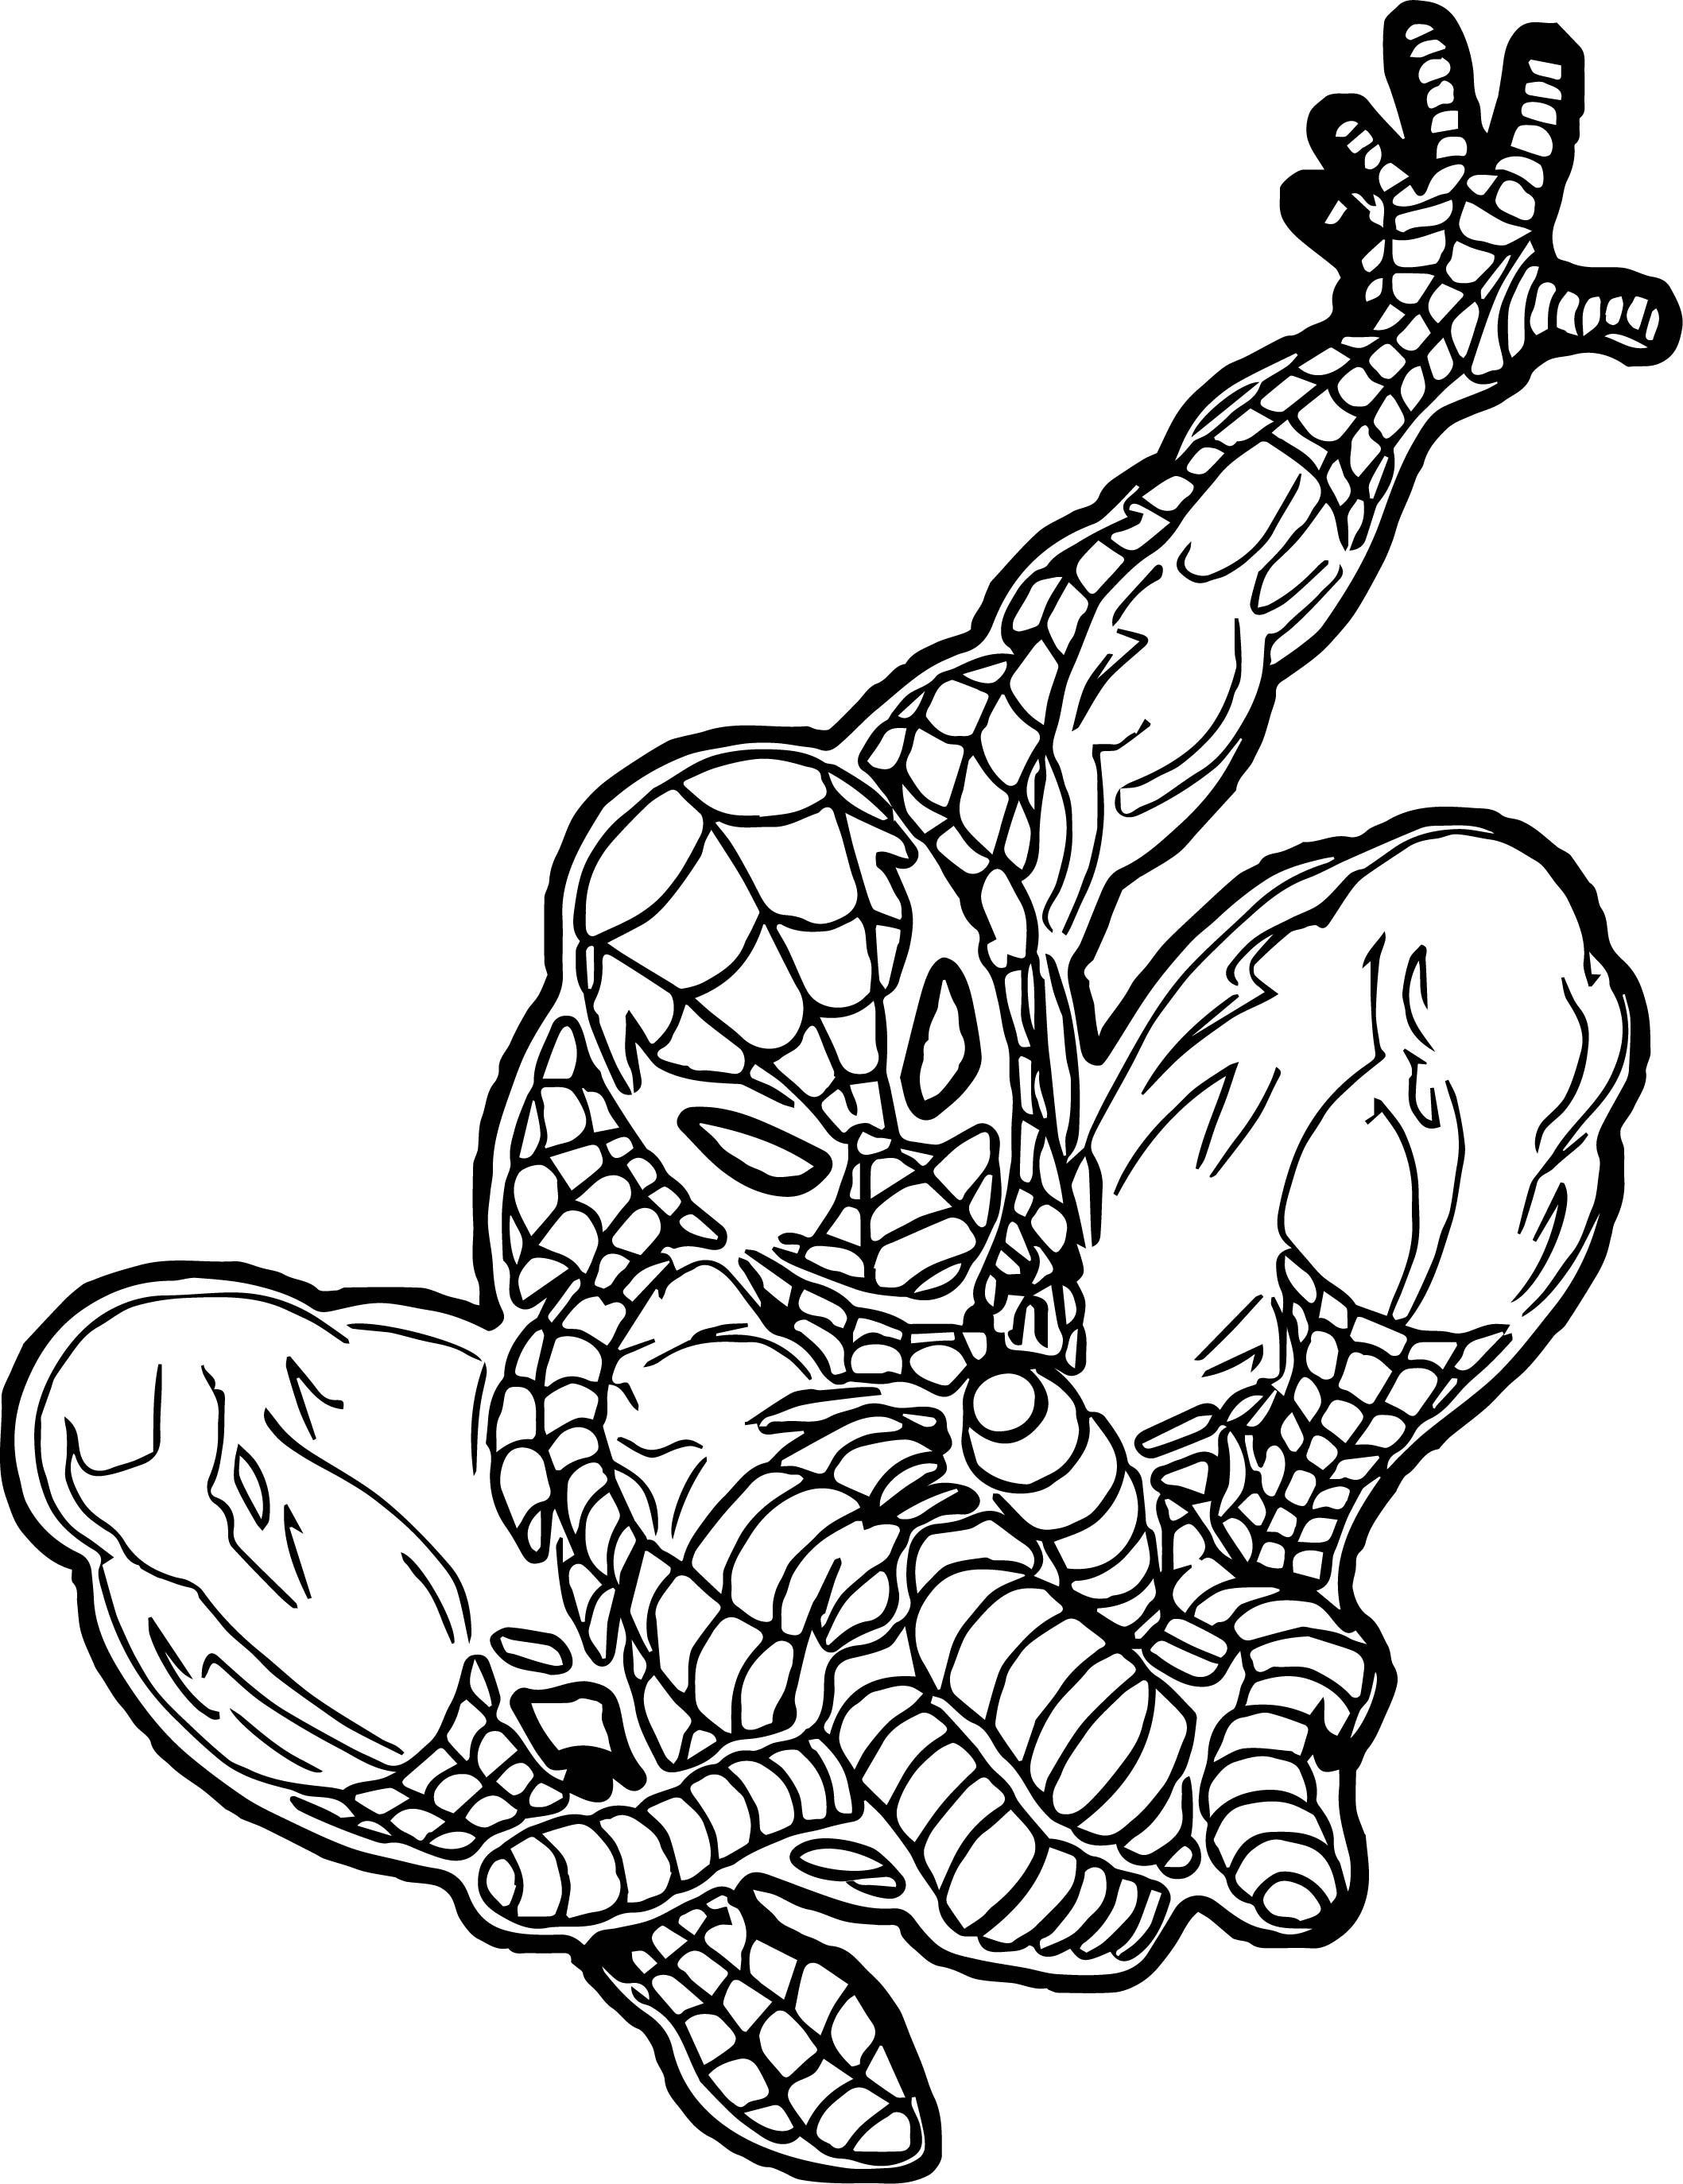 Spider Man Coloring Page WeColoringPage 107